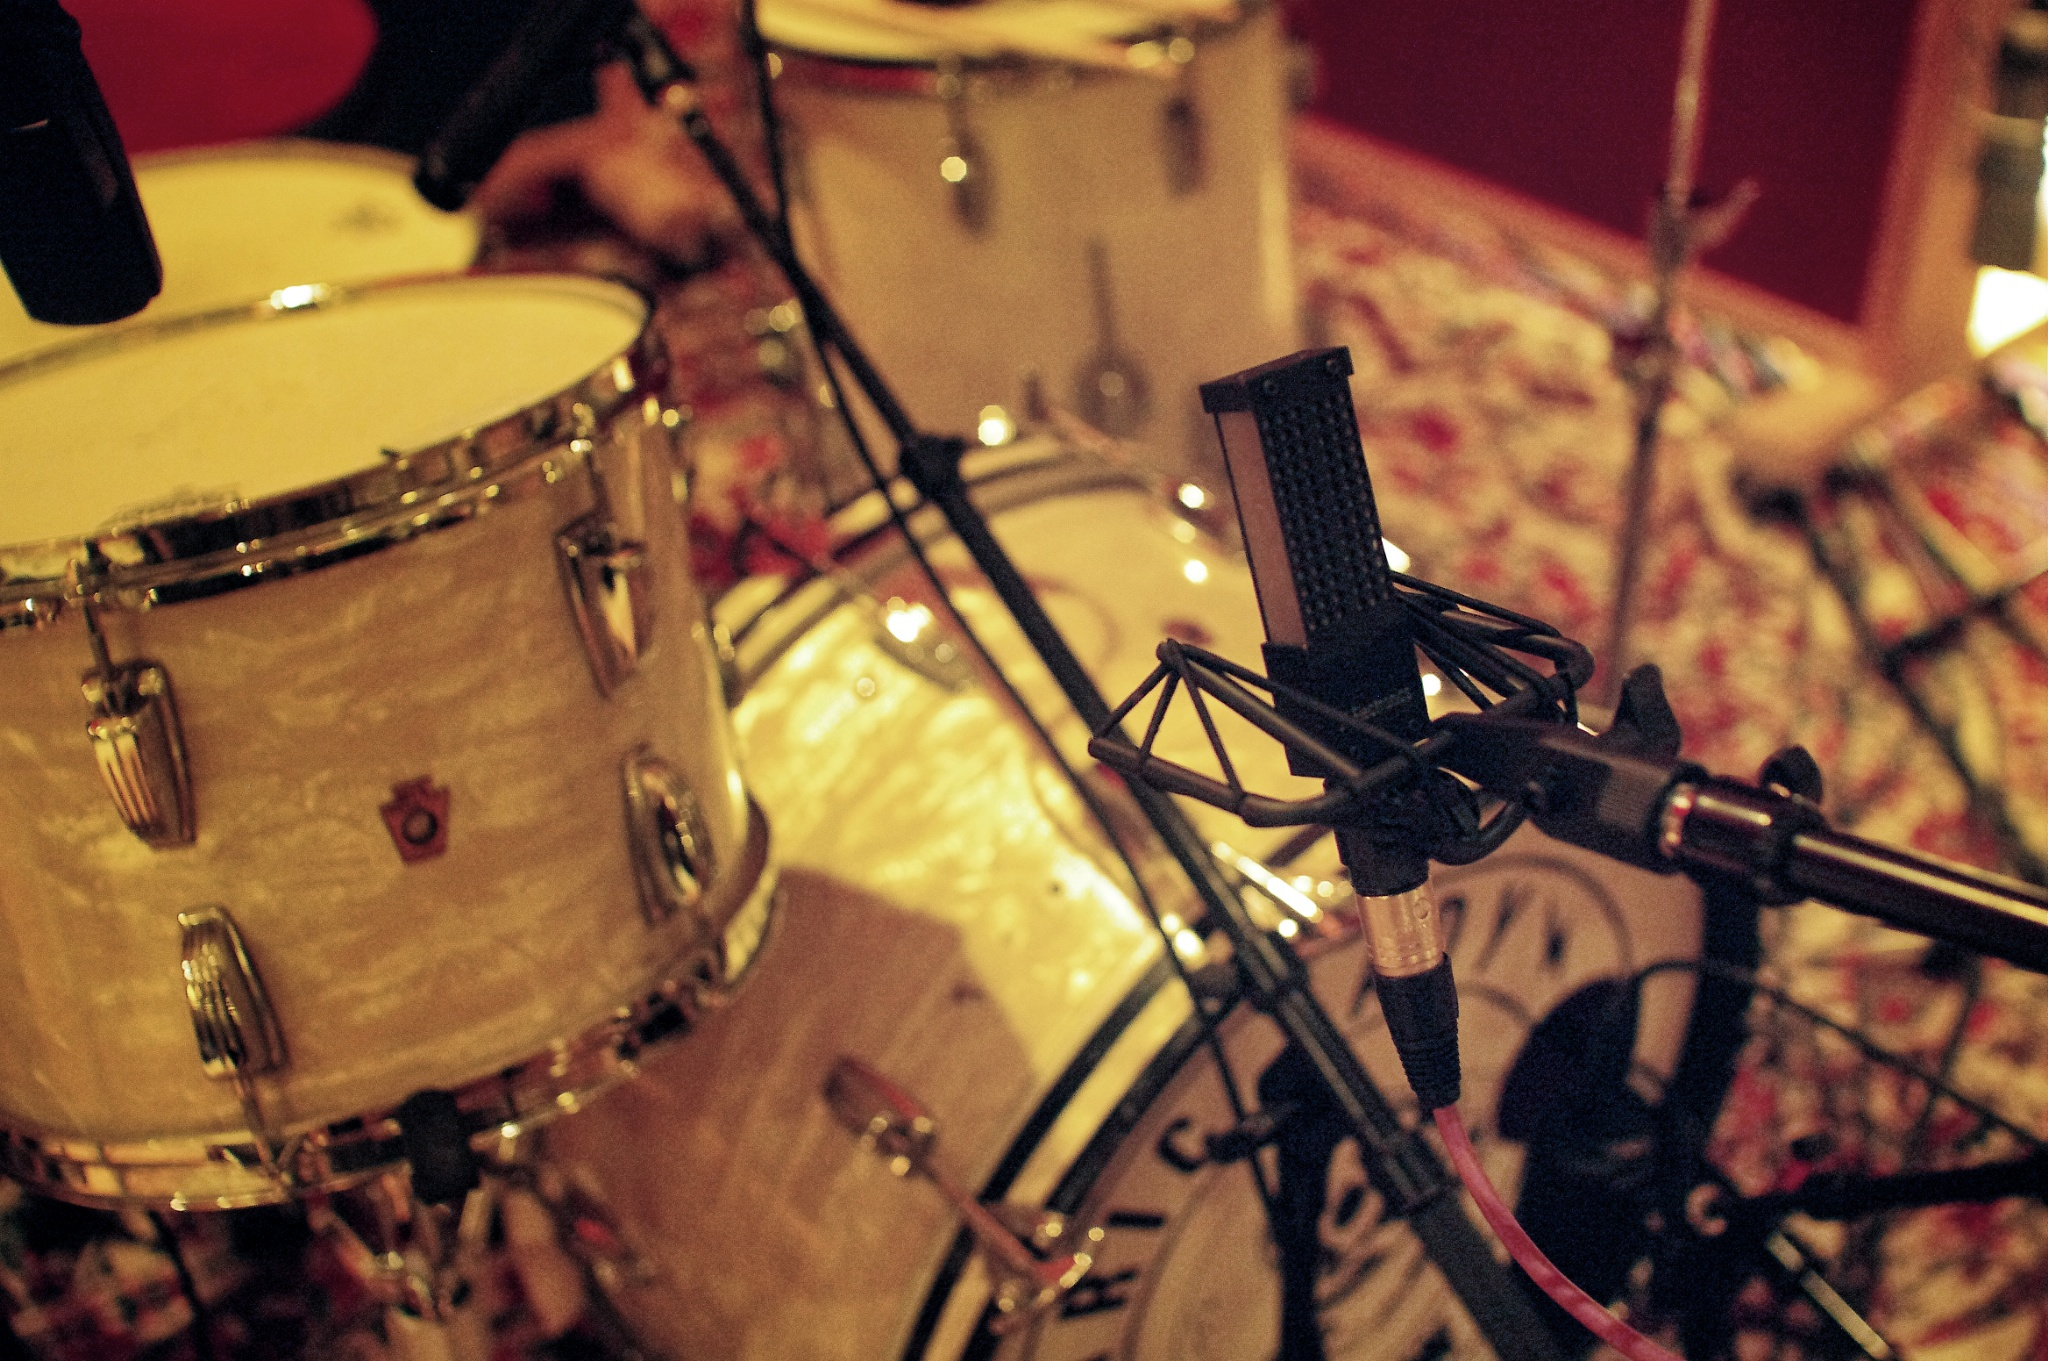 A VR1 at  Electric Lady Studios NYC  on a session with John O'Mahoney (Metric, The Kills).